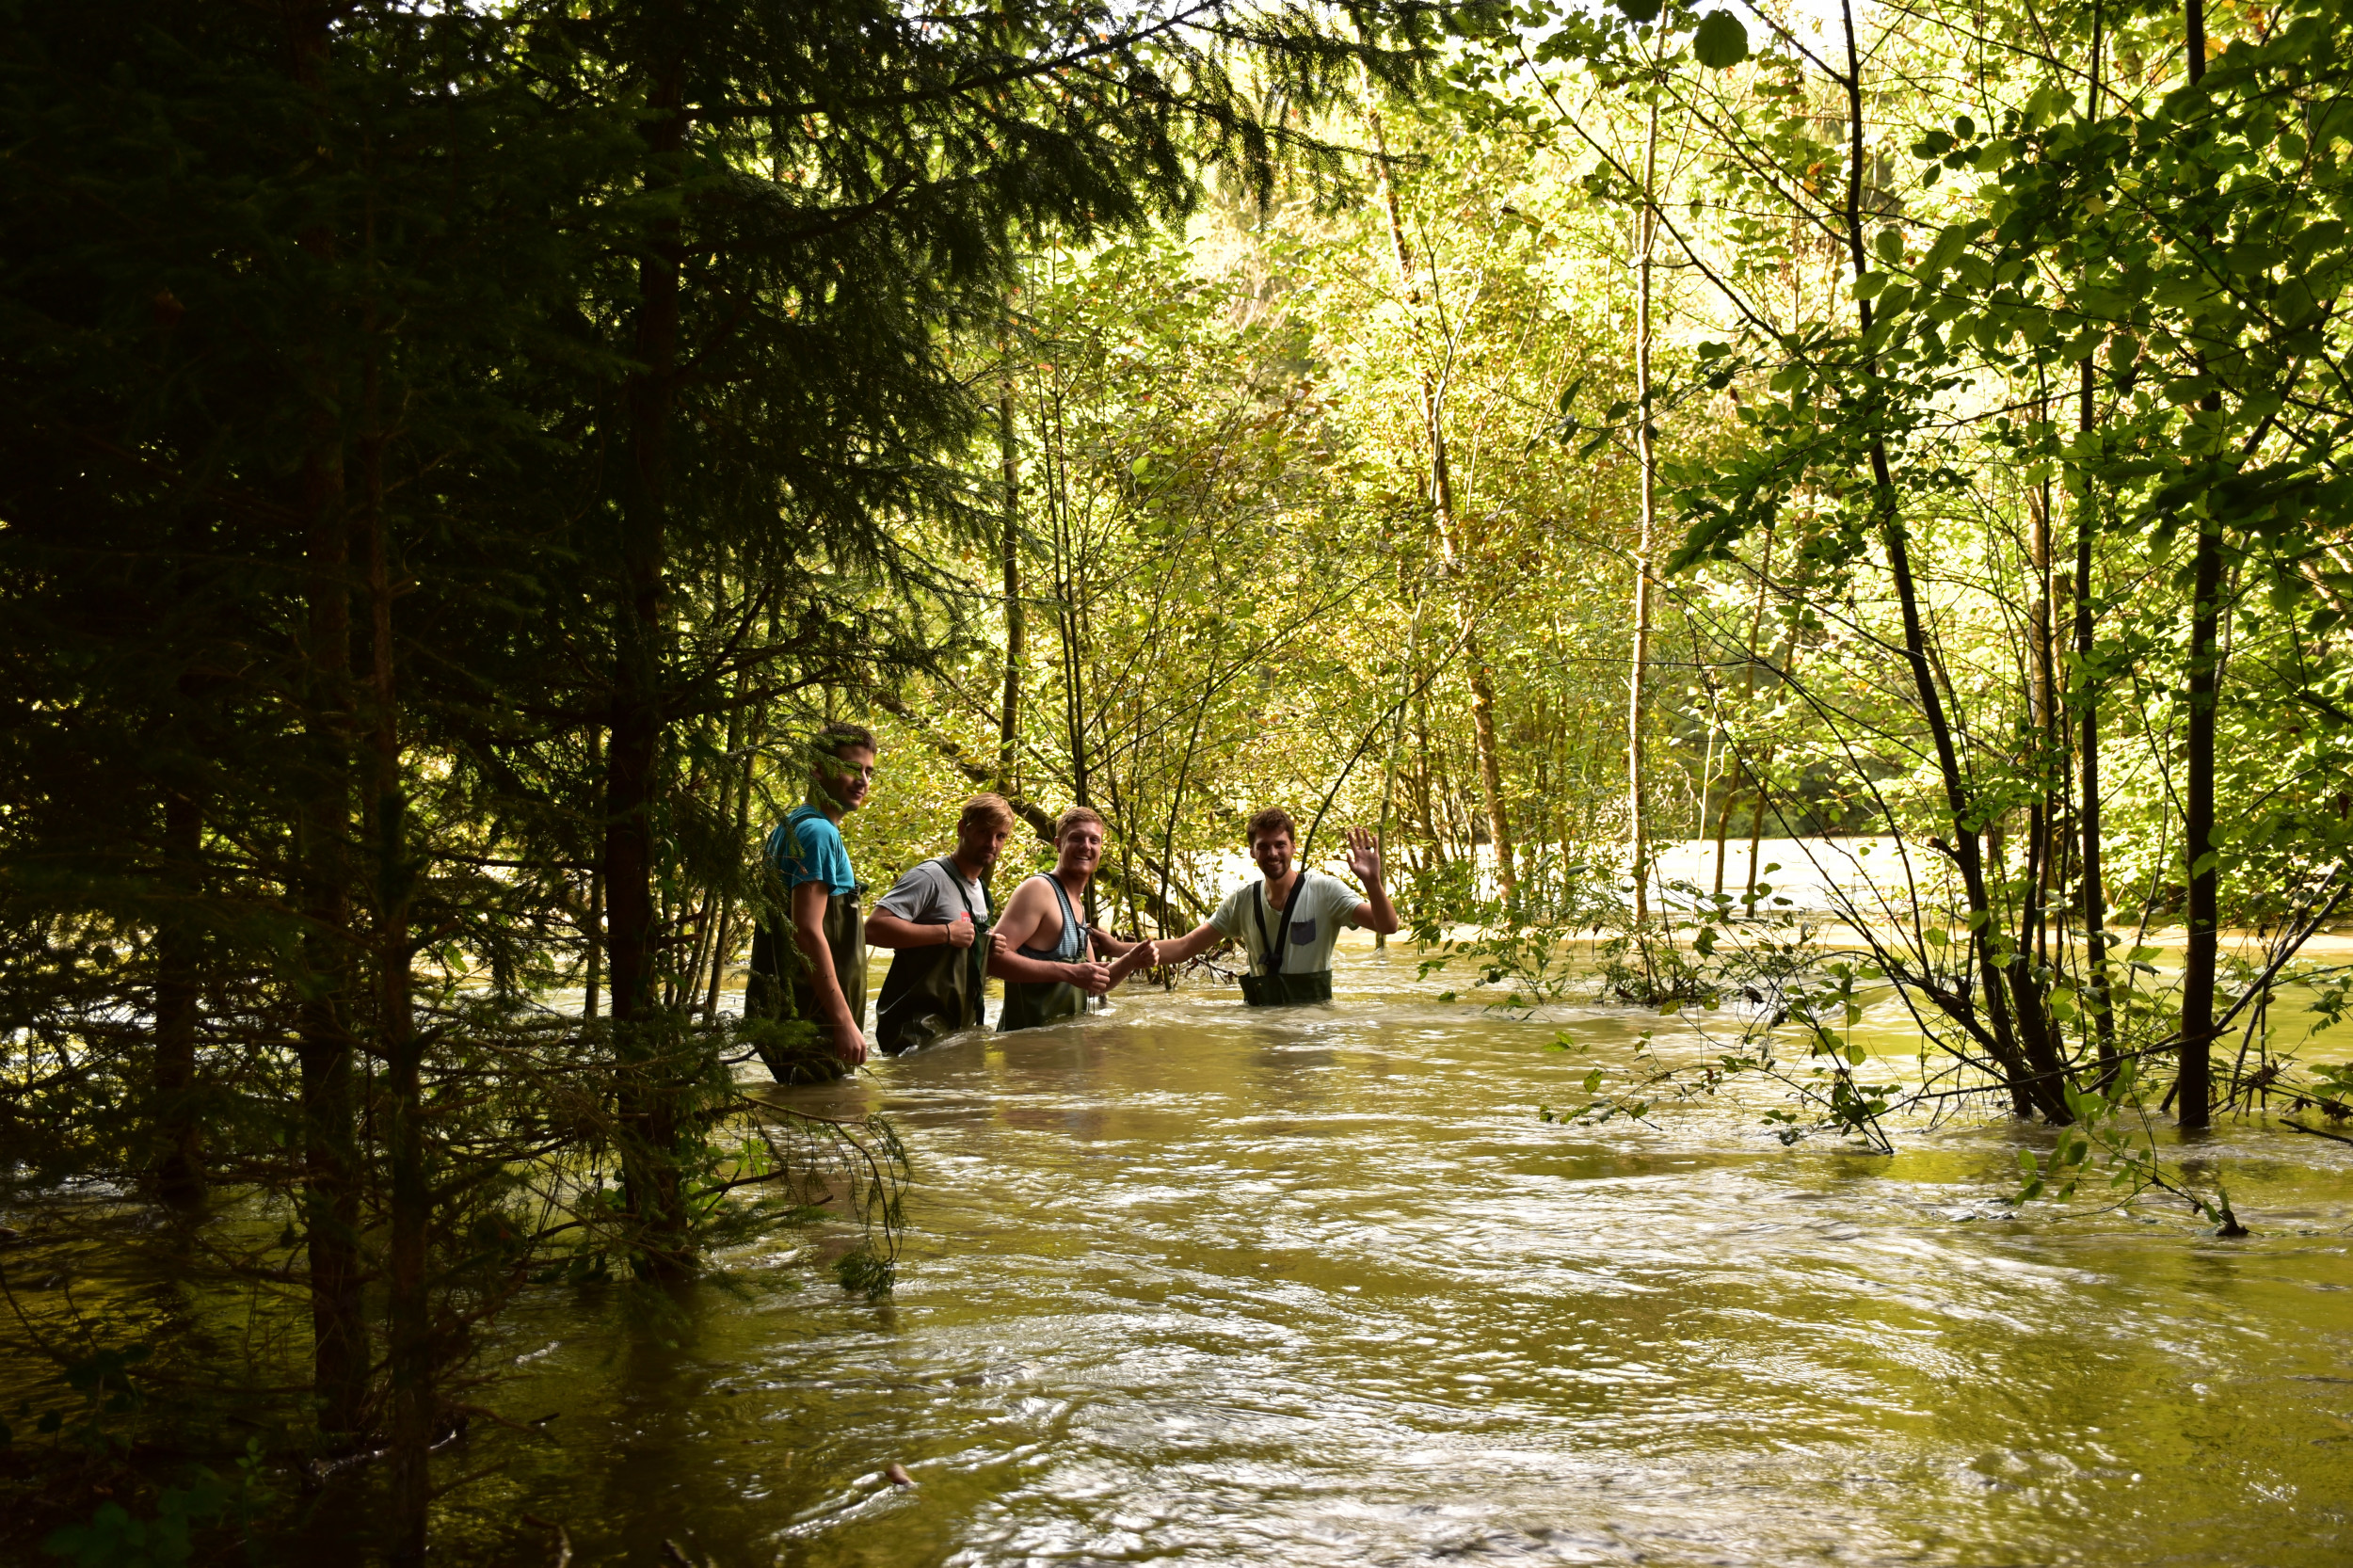 During the flood the Saane floodplain forests are under water.